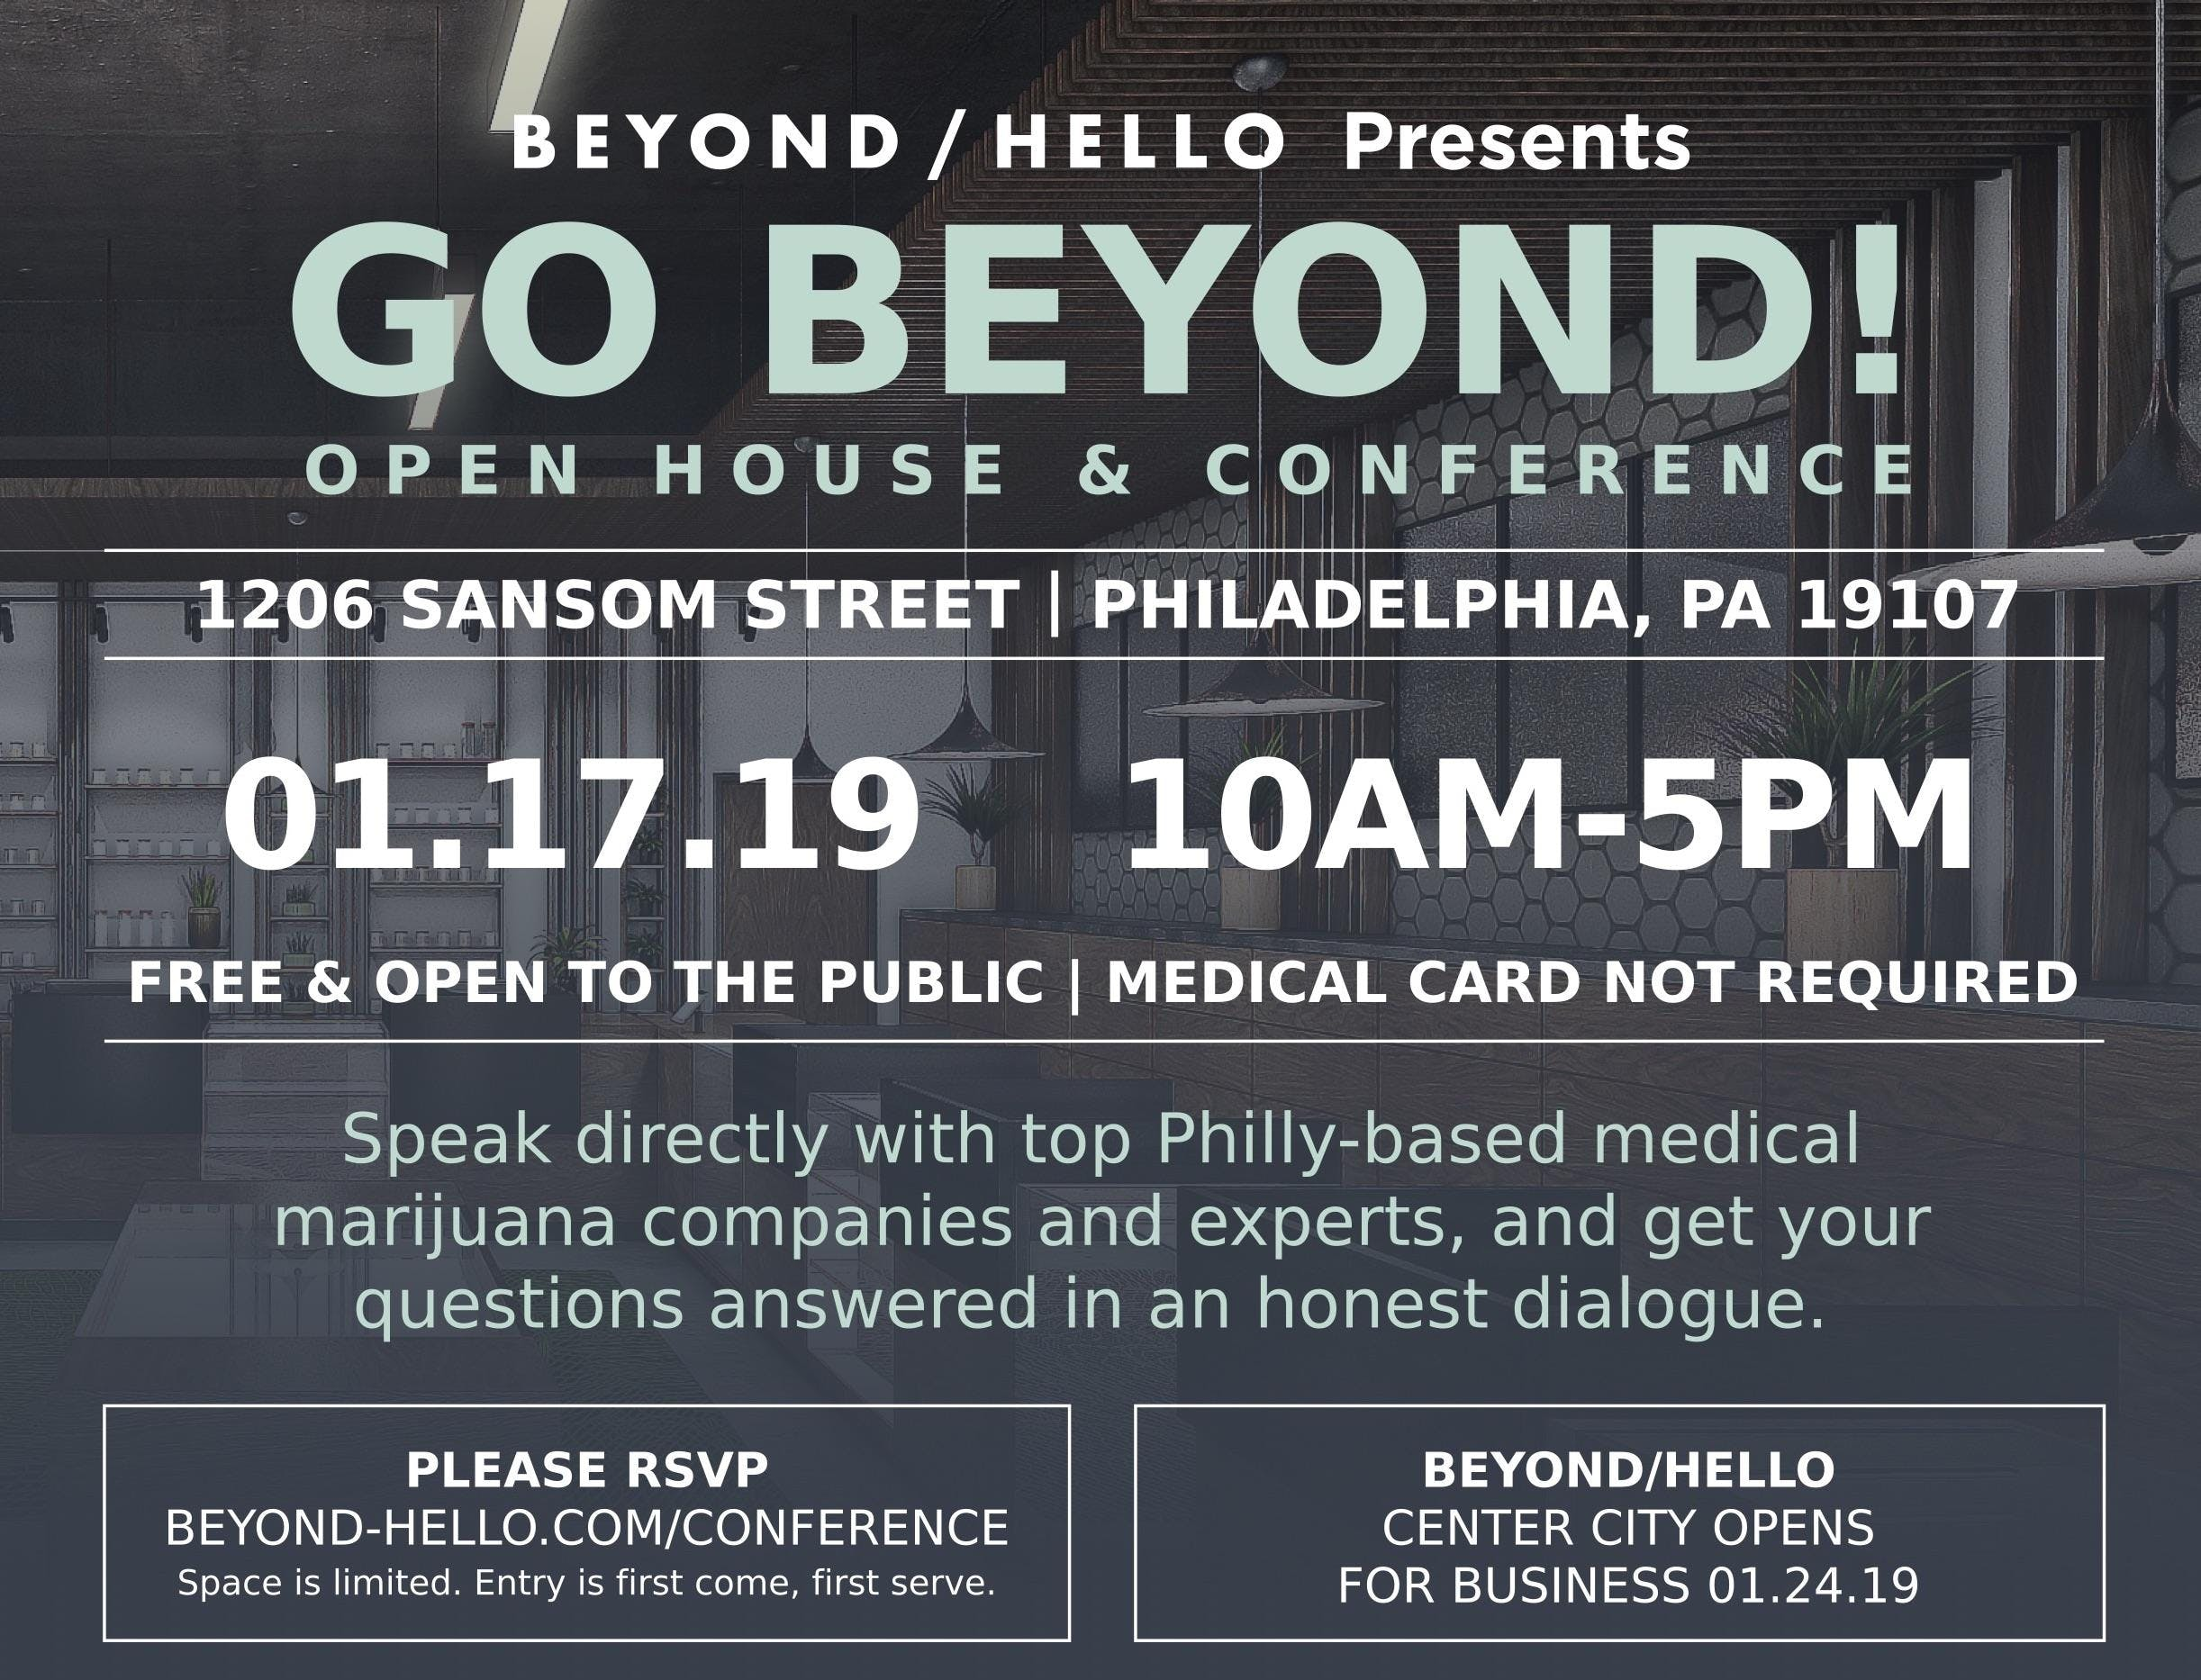 GO BEYOND! Medical Cannabis Conference and Di